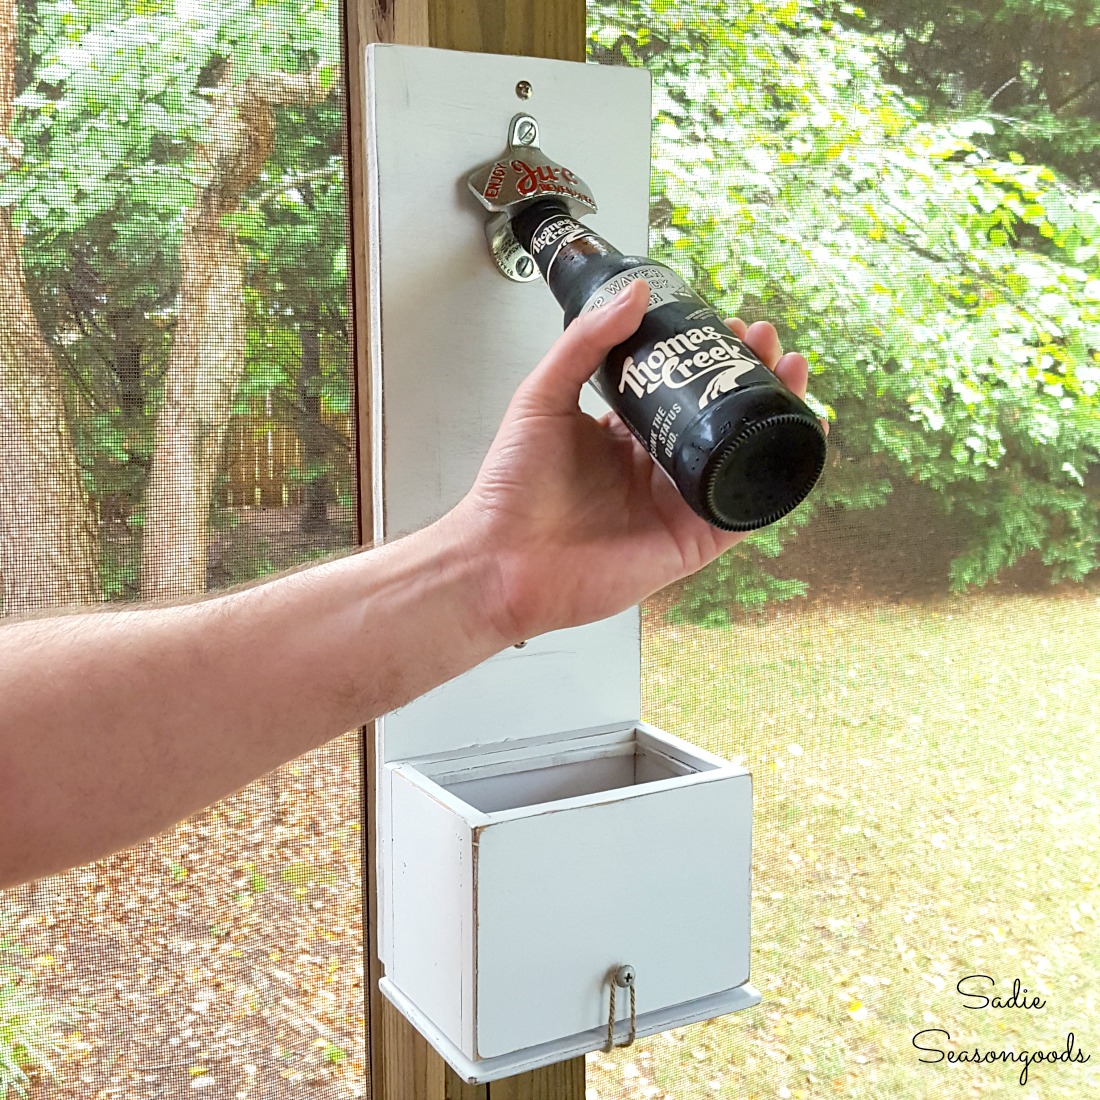 Upcycling a recipe card box into a bottle cap catcher for a wall mounted bottle opener for man cave decor and Father's Day gift by Sadie Seasongoods